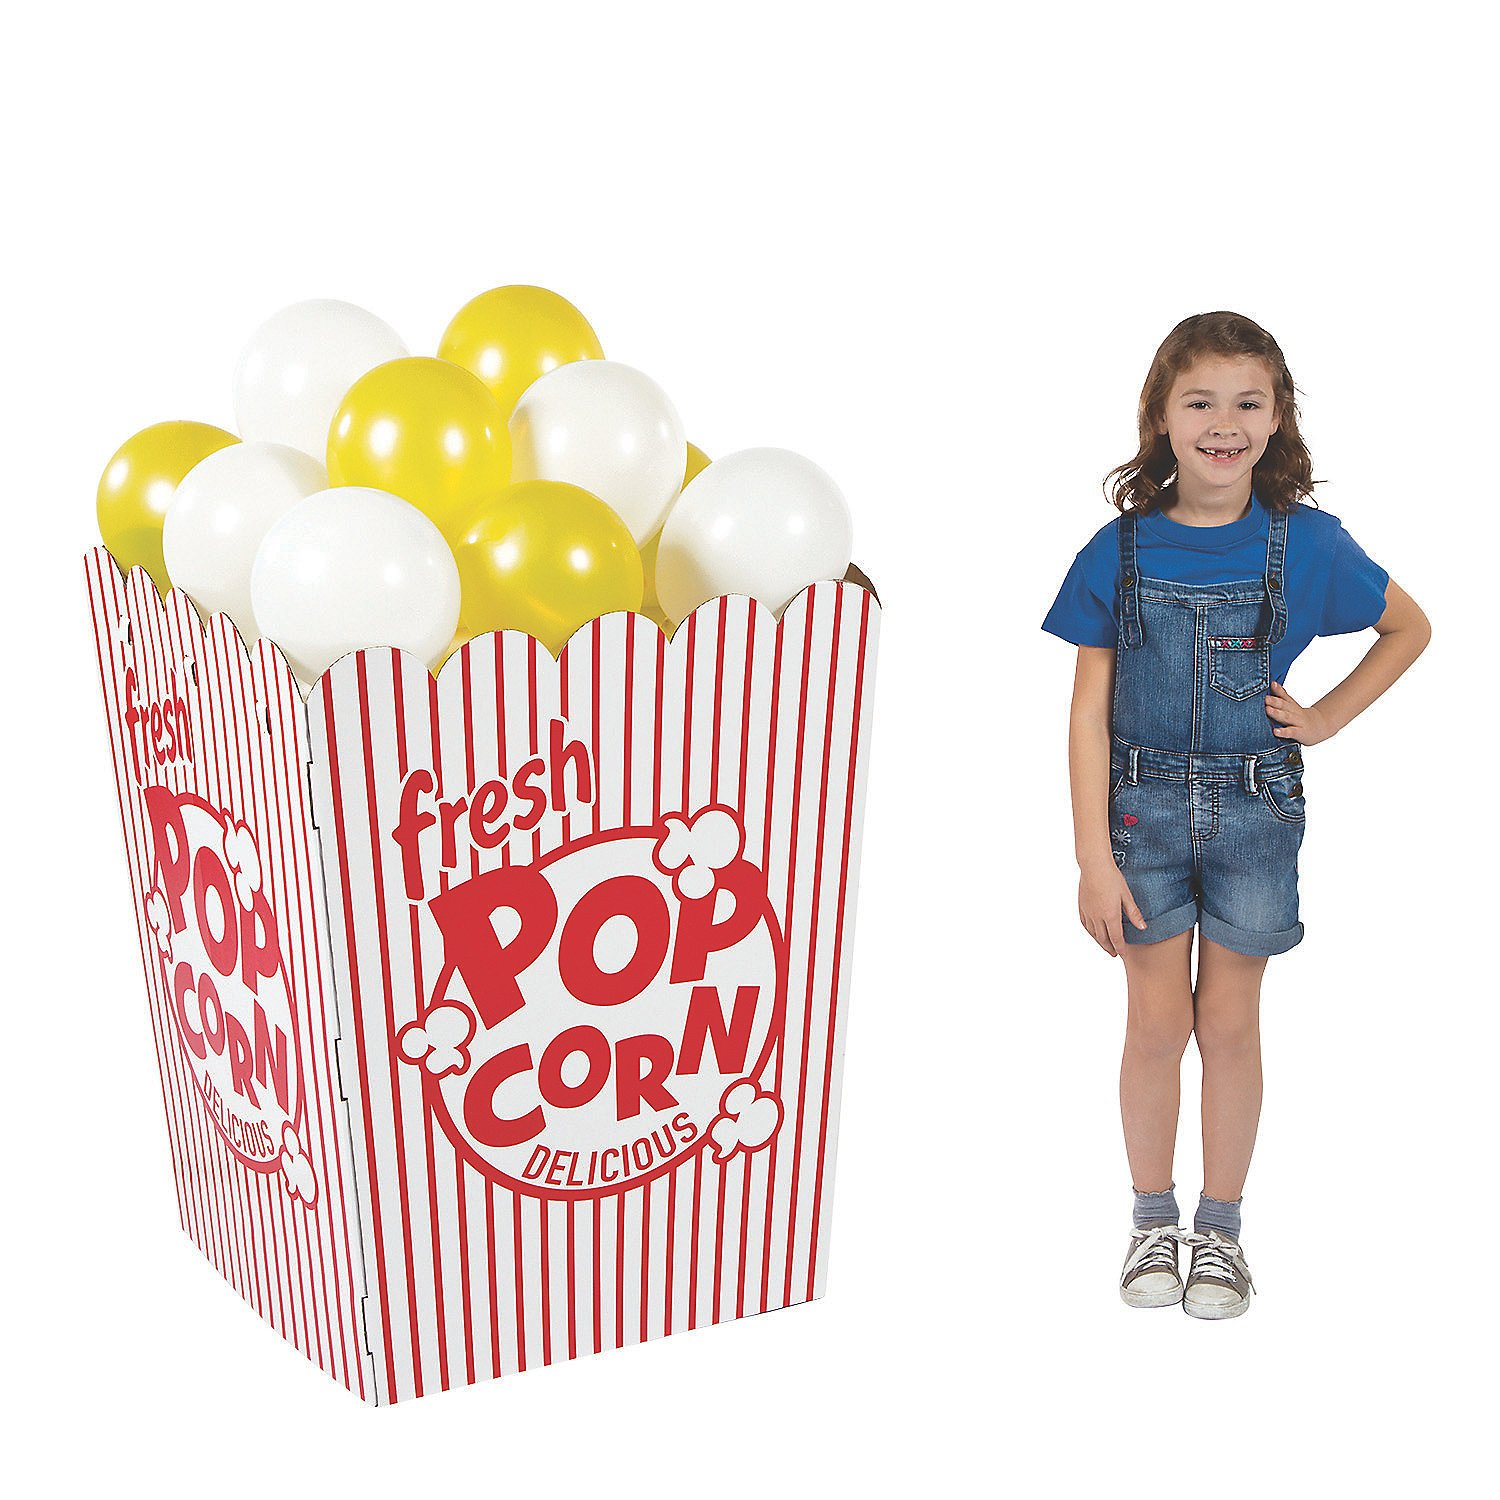 3D Popcorn Box Cardboard Stand-Up (Includes 24 Balloons) by Fun Express